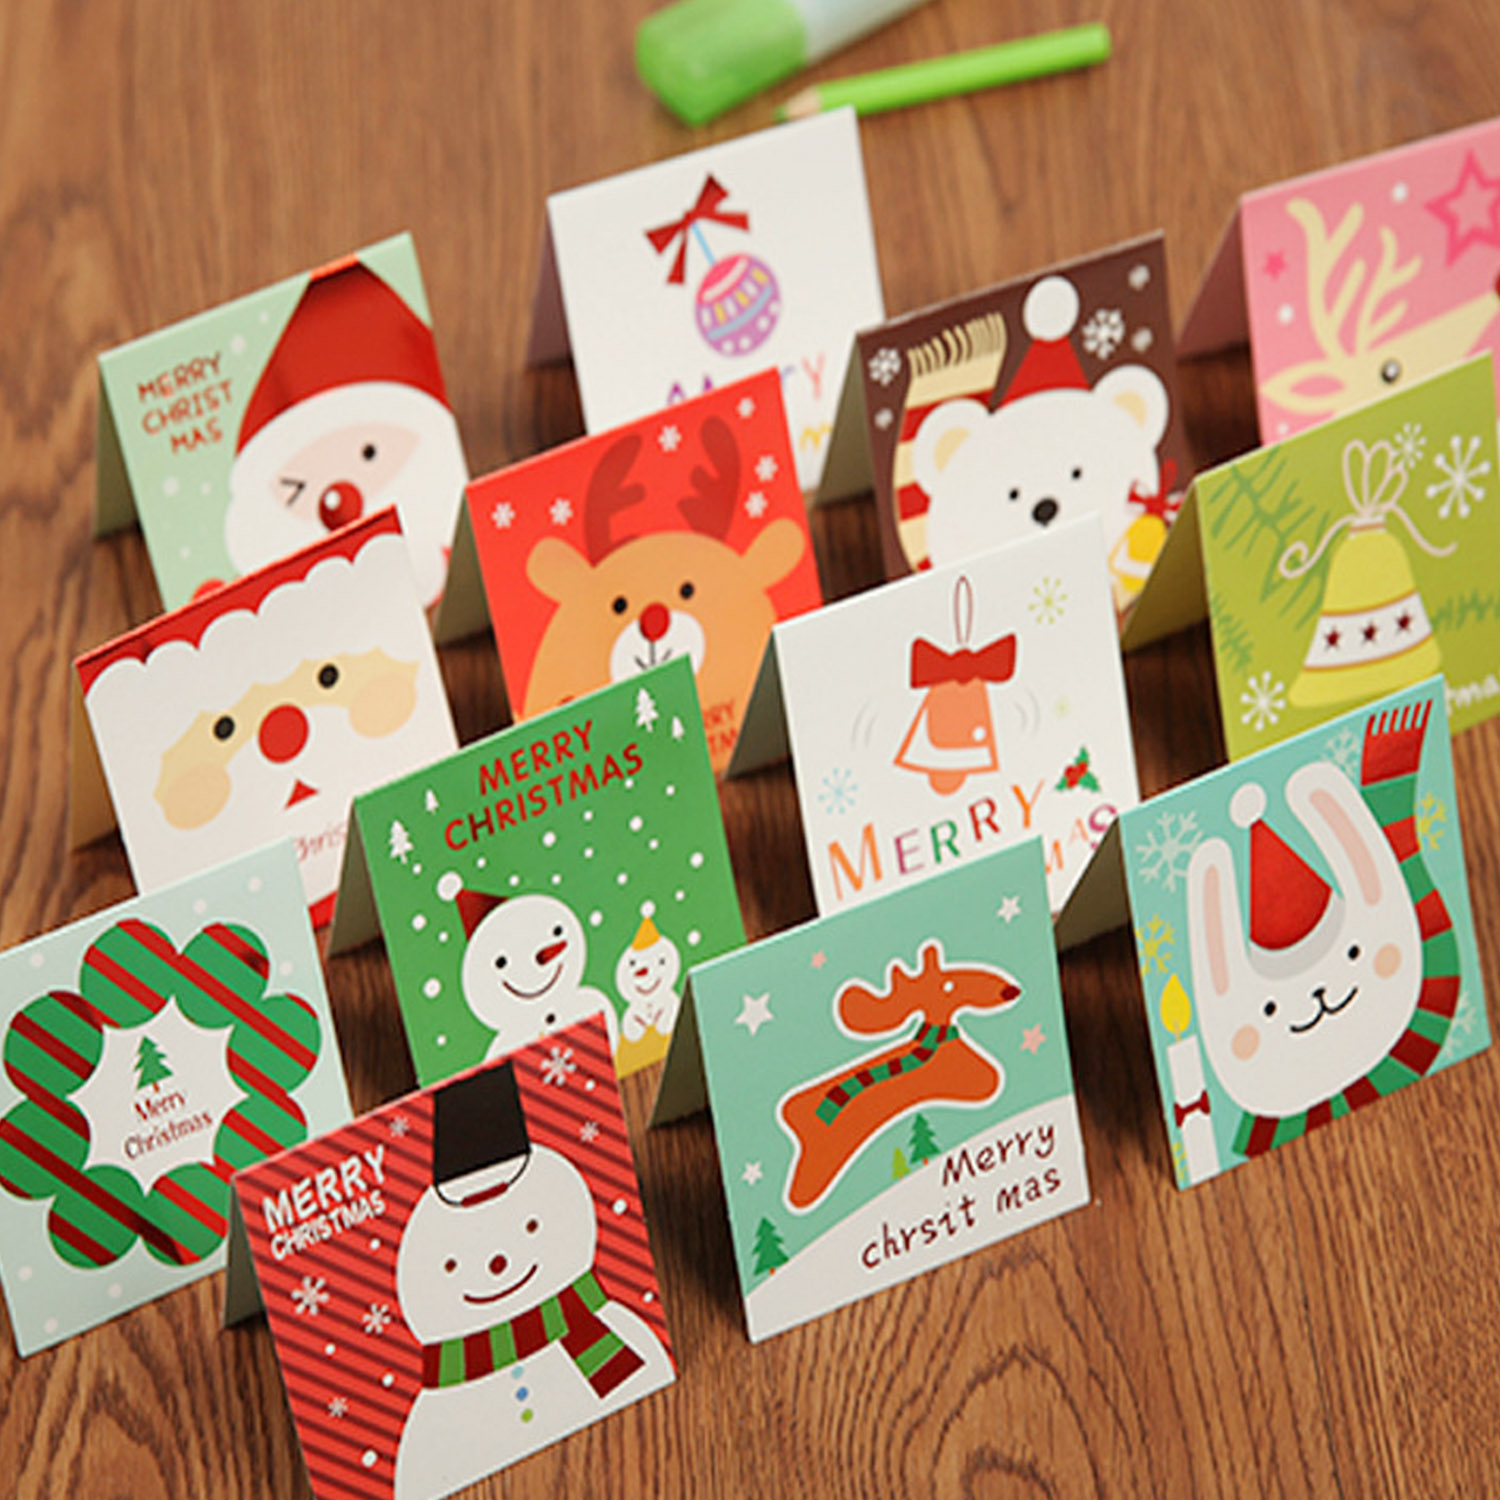 20PCS Funny Cute Merry Christmas Xmas Paper Greeting Blessing Cards With Envelope For Holiday Festival Party Supplies